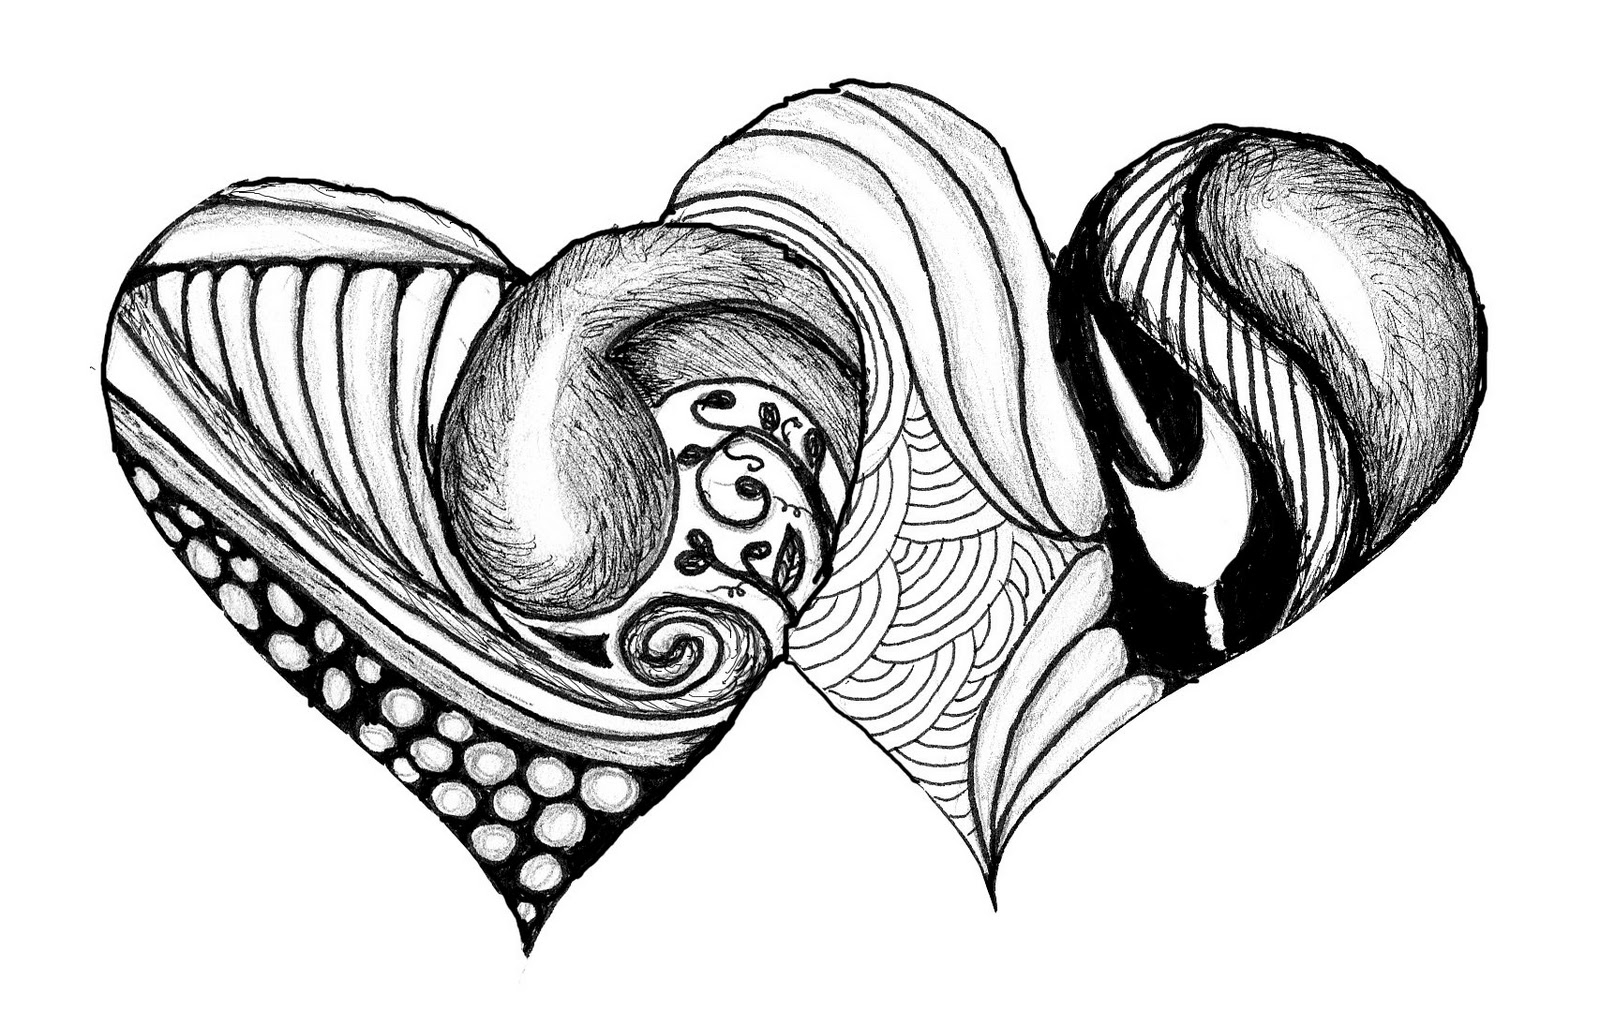 Black And White Drawings Of Hearts - ClipArt Best